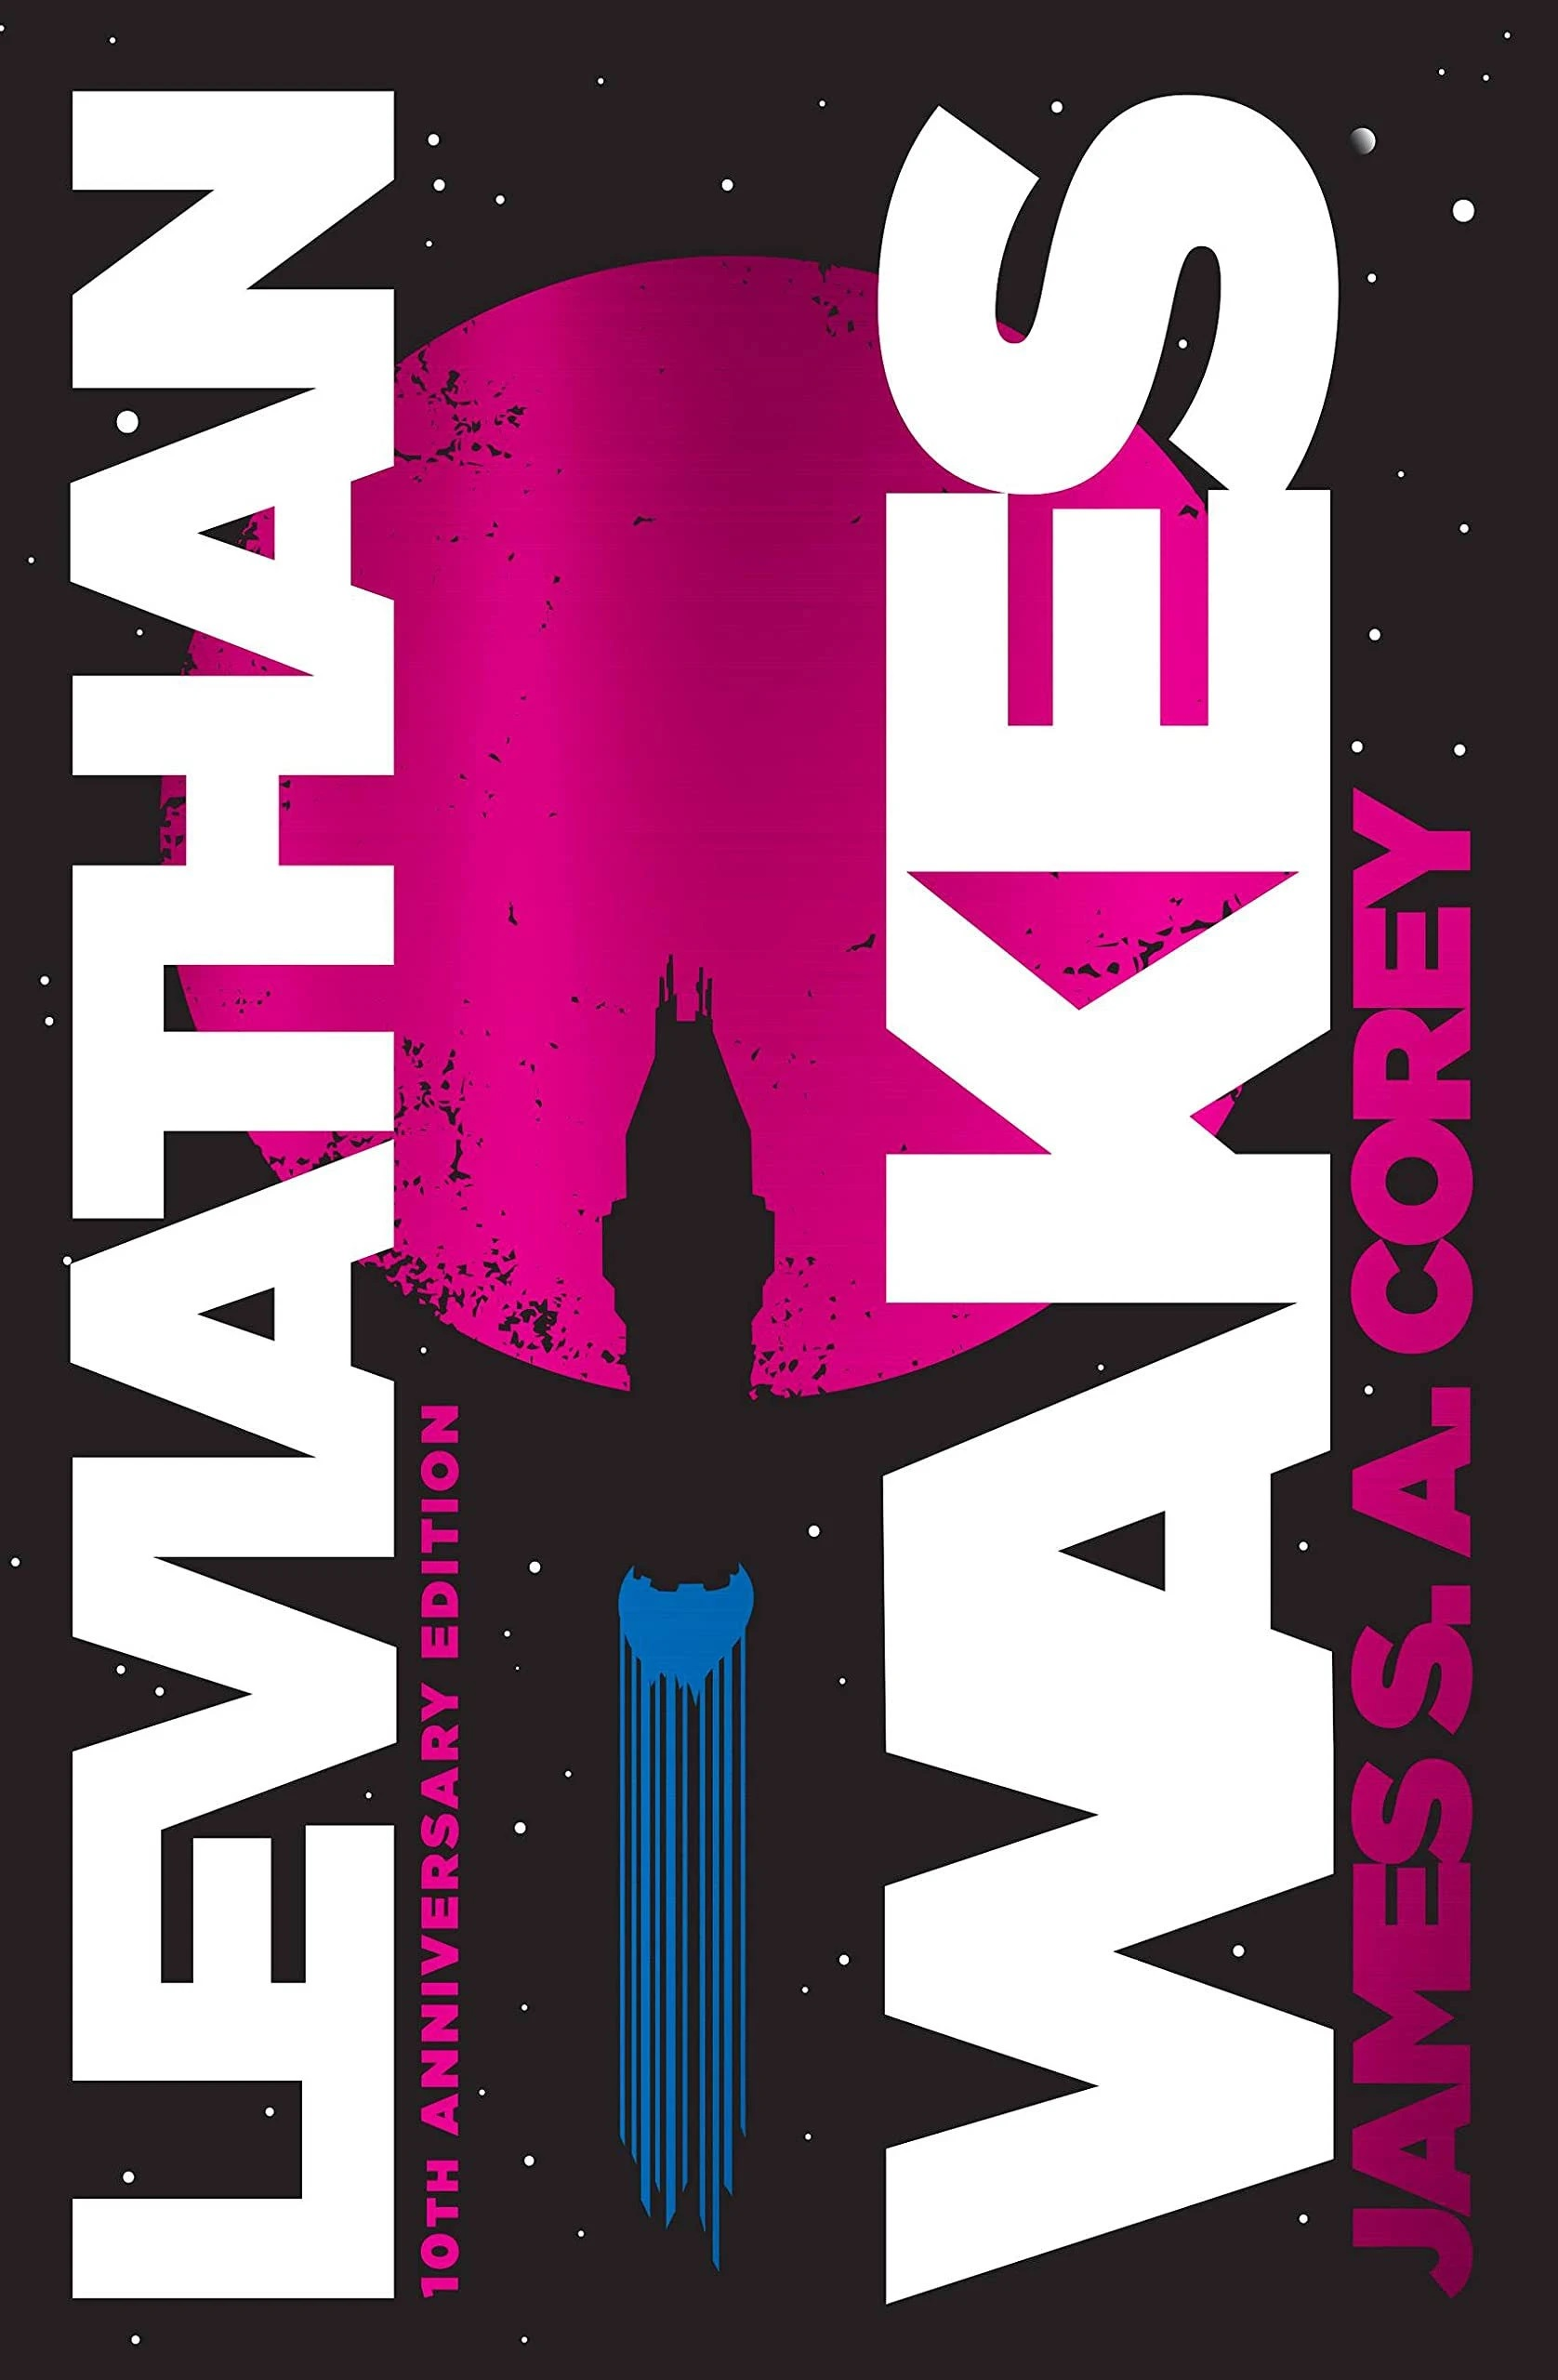 Leviathan Wakes: 10th Anniversary Edition by James S.A. Corey